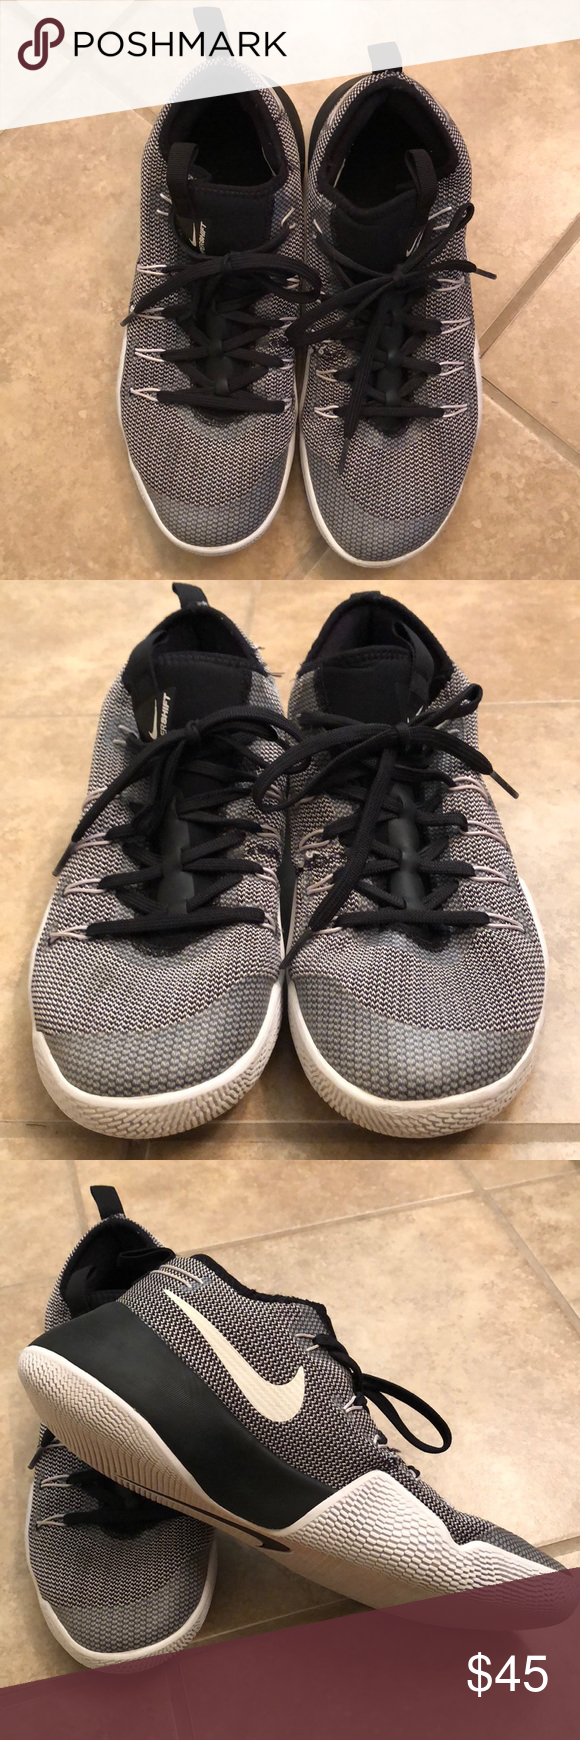 508ff40ae4b7 Nike Hypershift basketball shoes size 10 Nike Hypershift basketball shoes  black and white - size 10. Worn but in good condition. Nike Shoes Sneakers